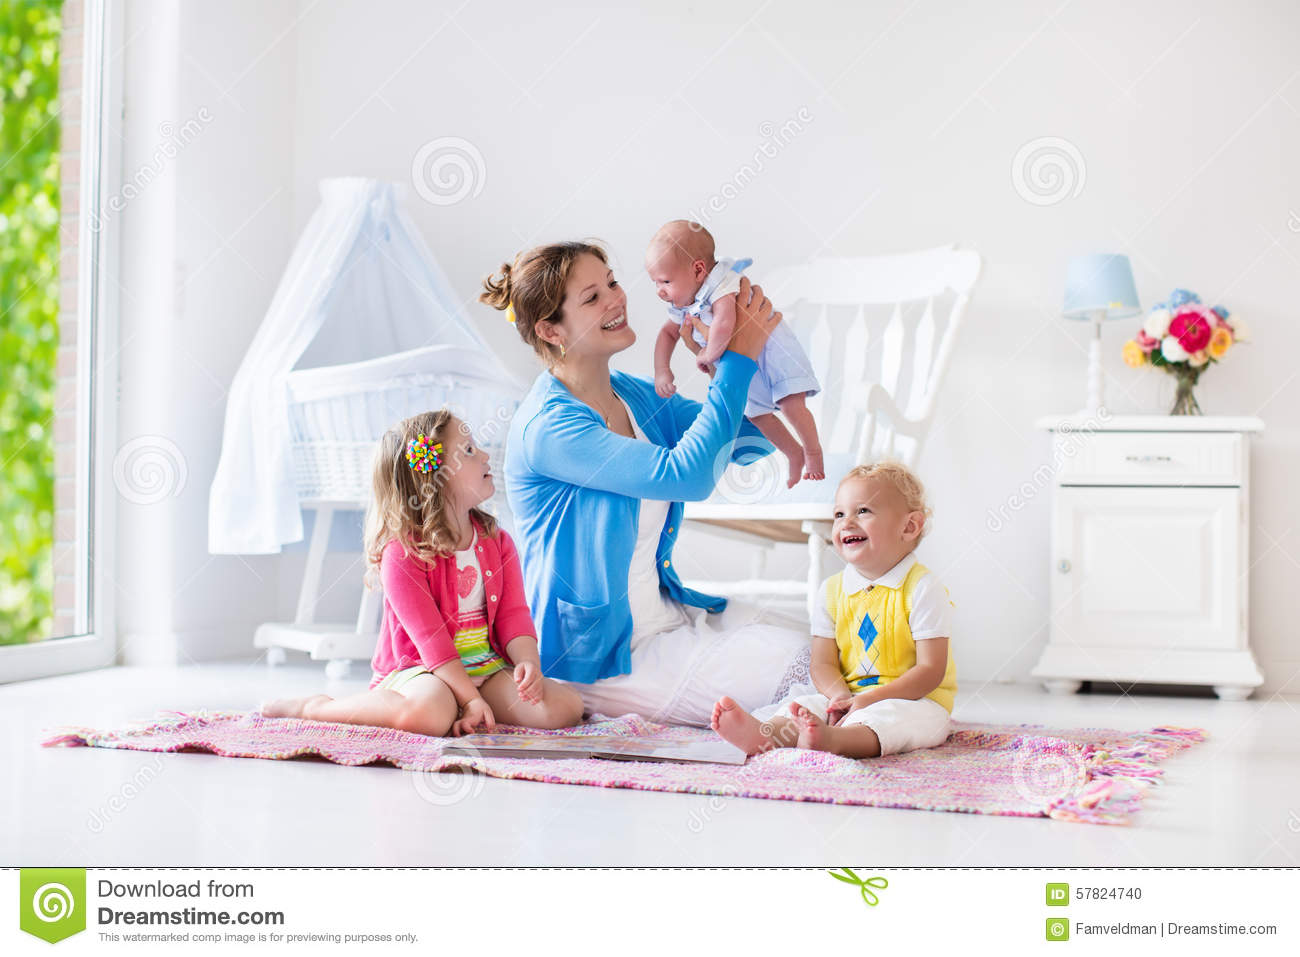 white indoor rocking chair zeus thunder ultimate gaming systems mother and kids playing in bedroom stock photo - image: 57824740